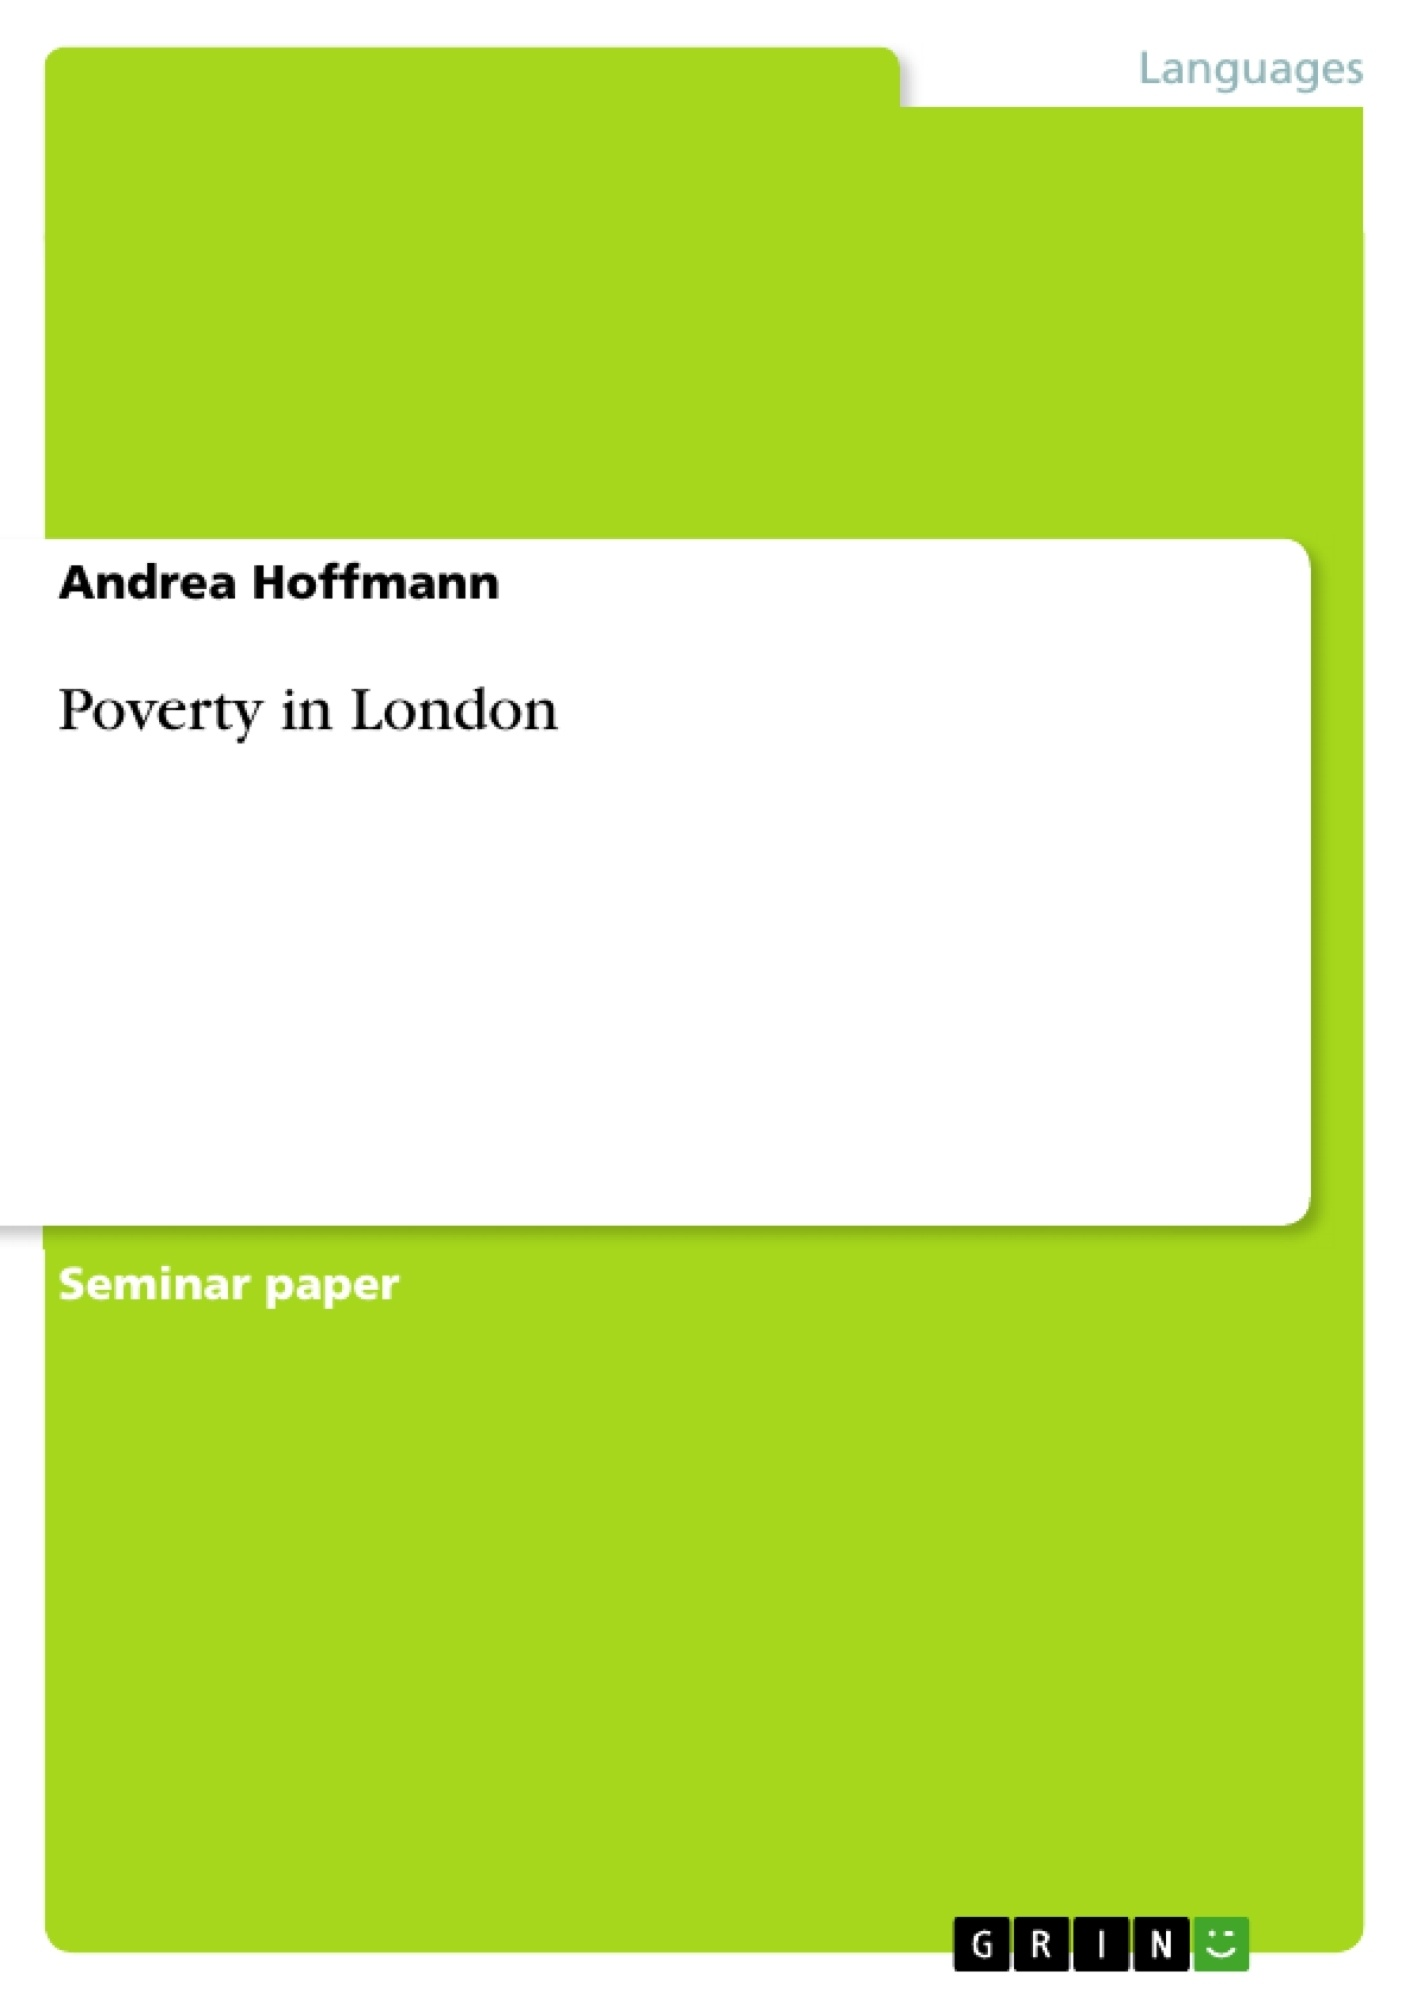 Title: Poverty in London